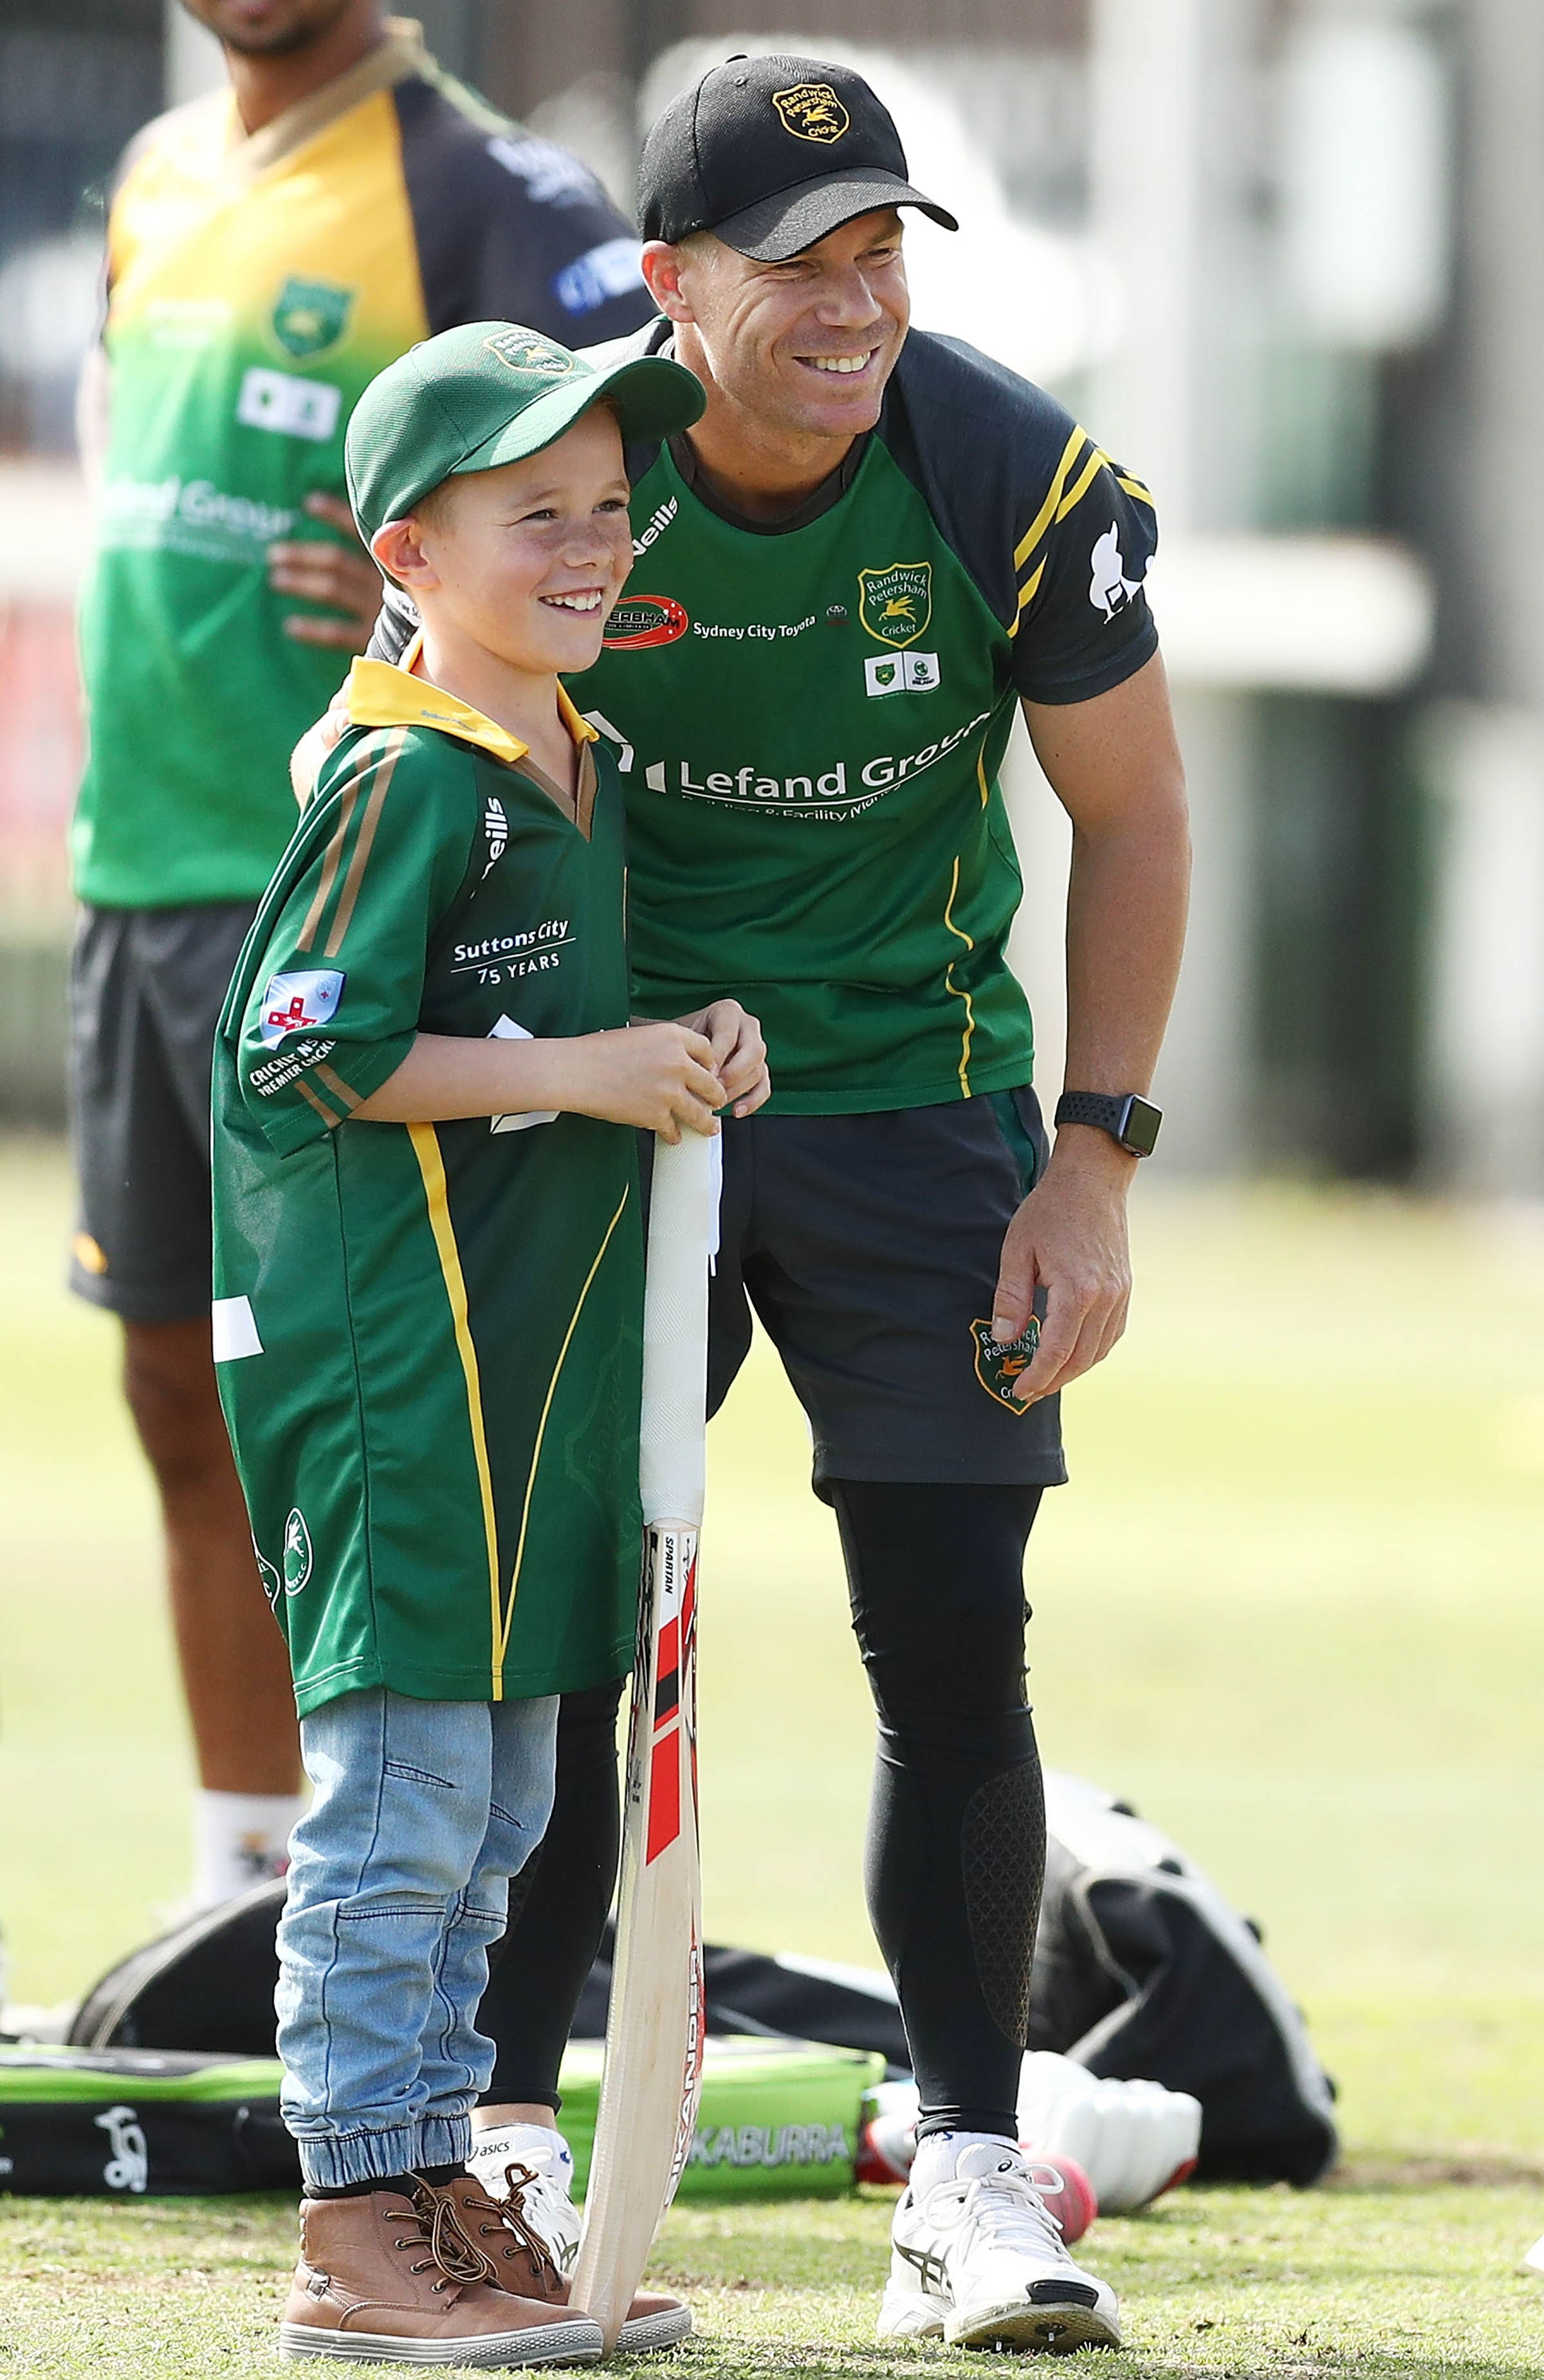 Warner makes a young fan's day // Getty